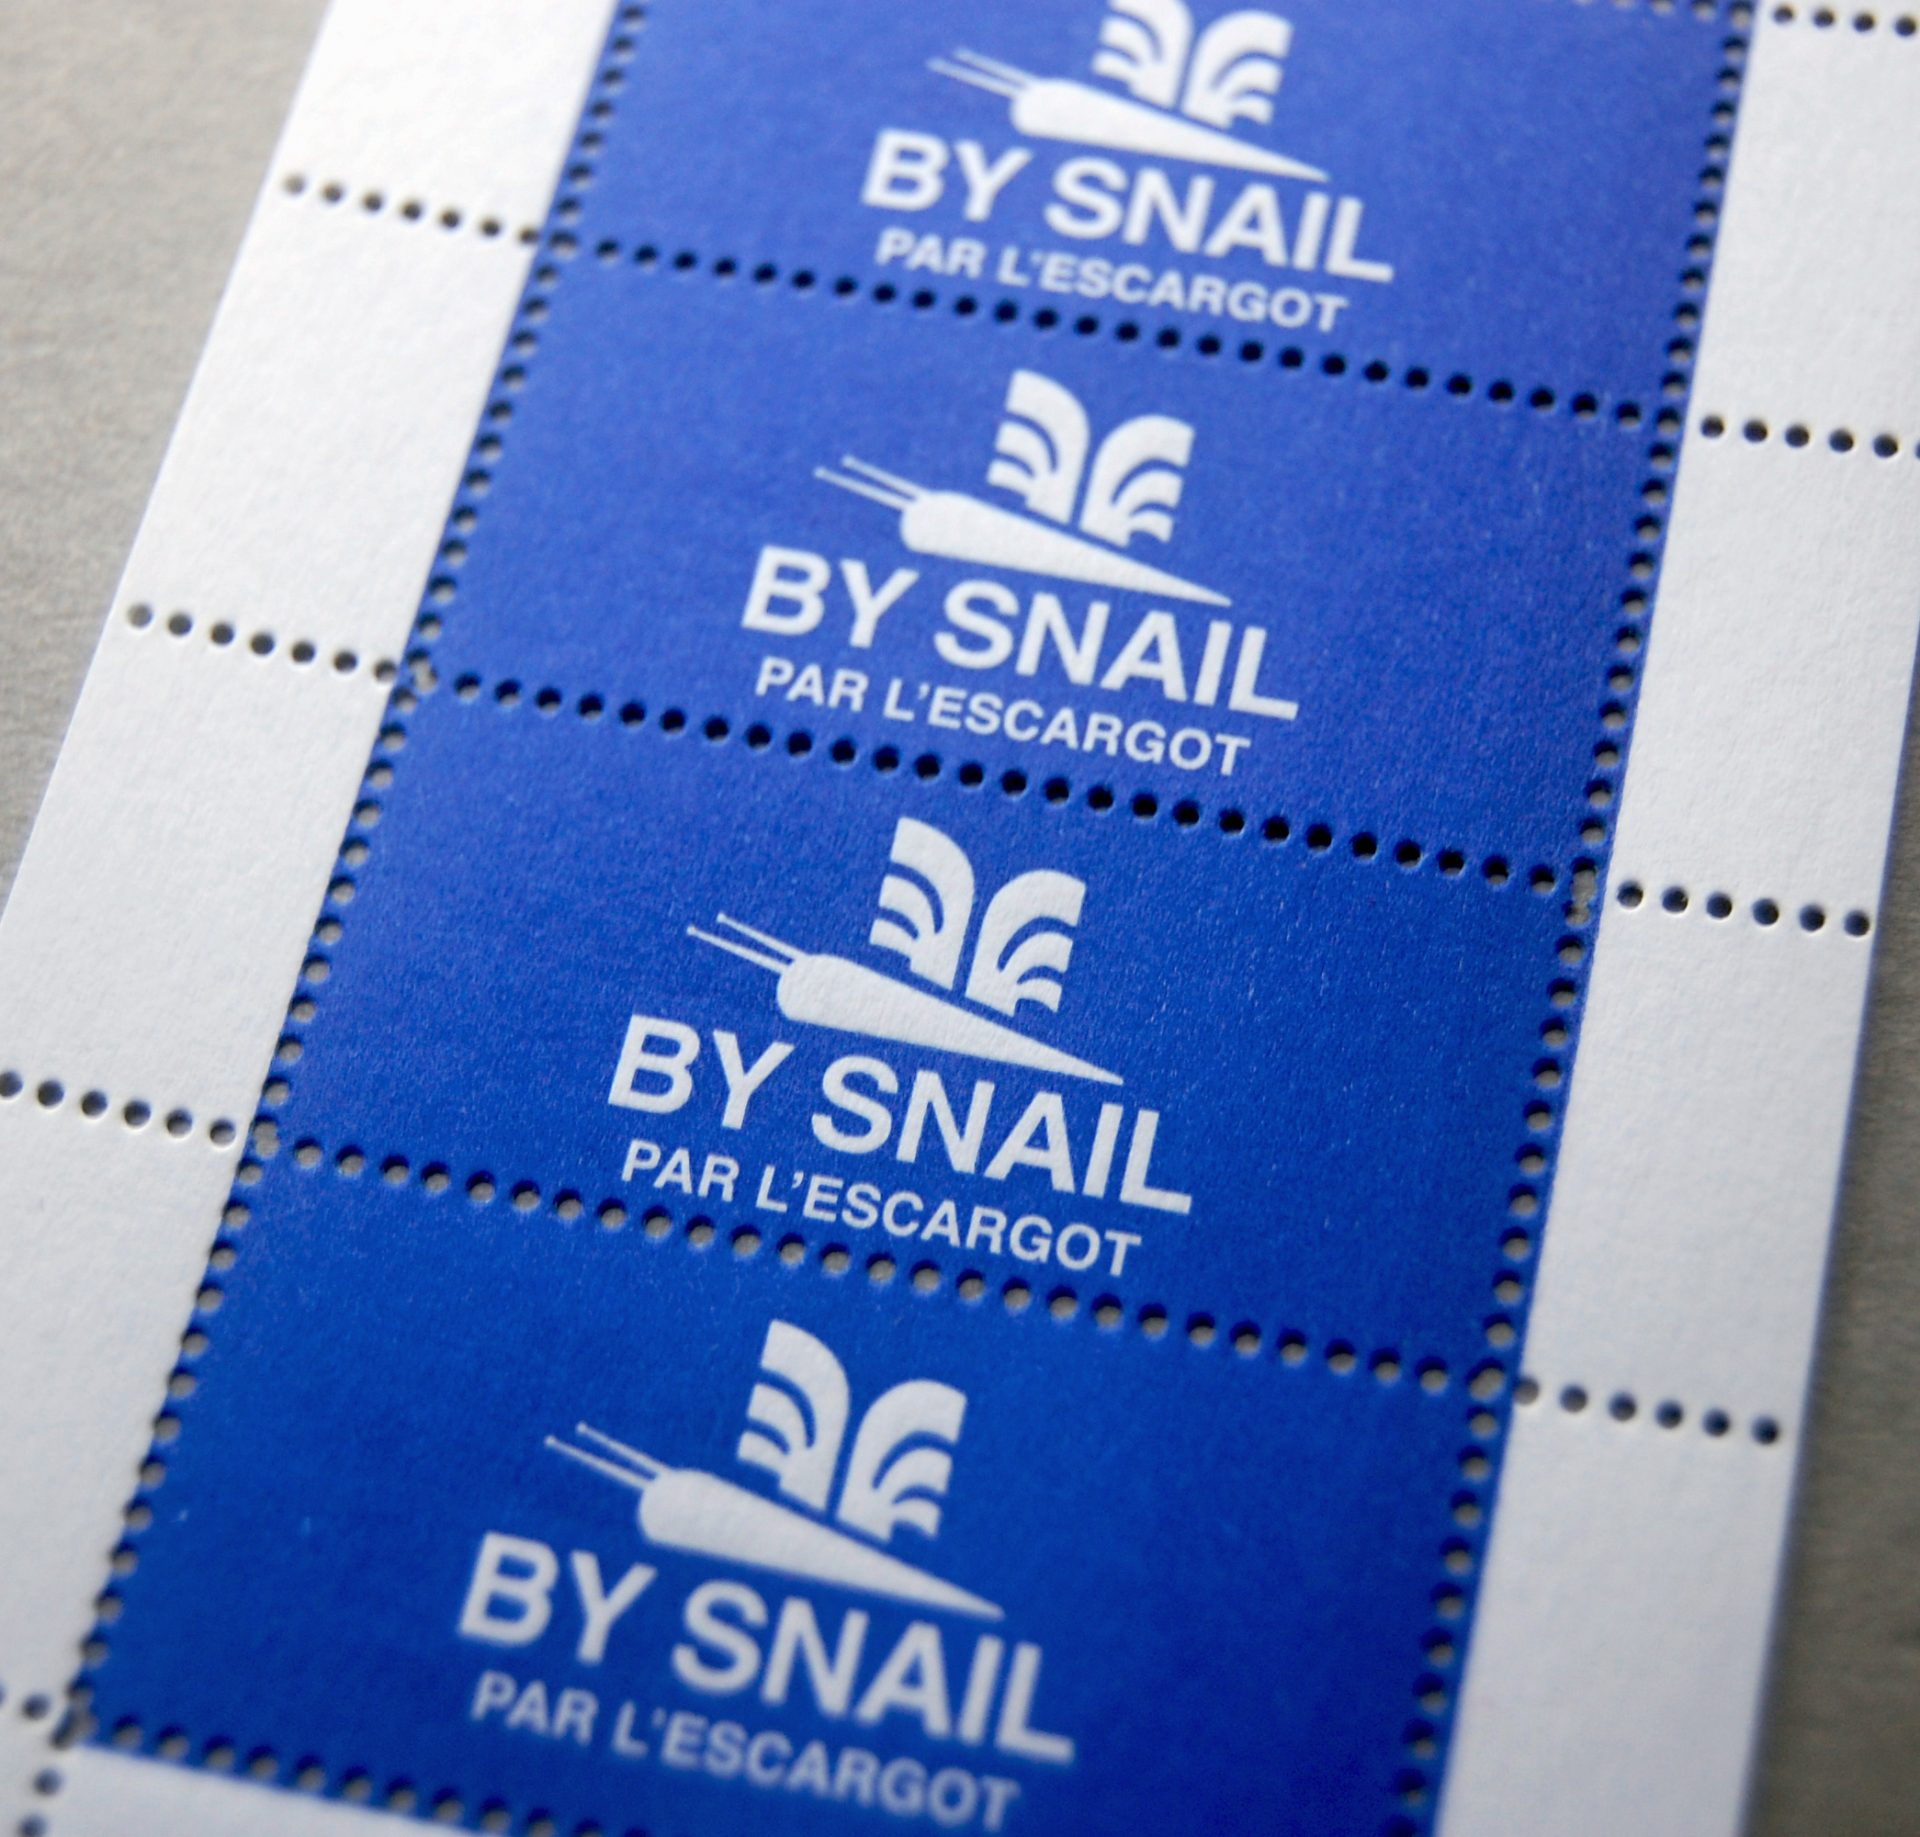 By snail stamps